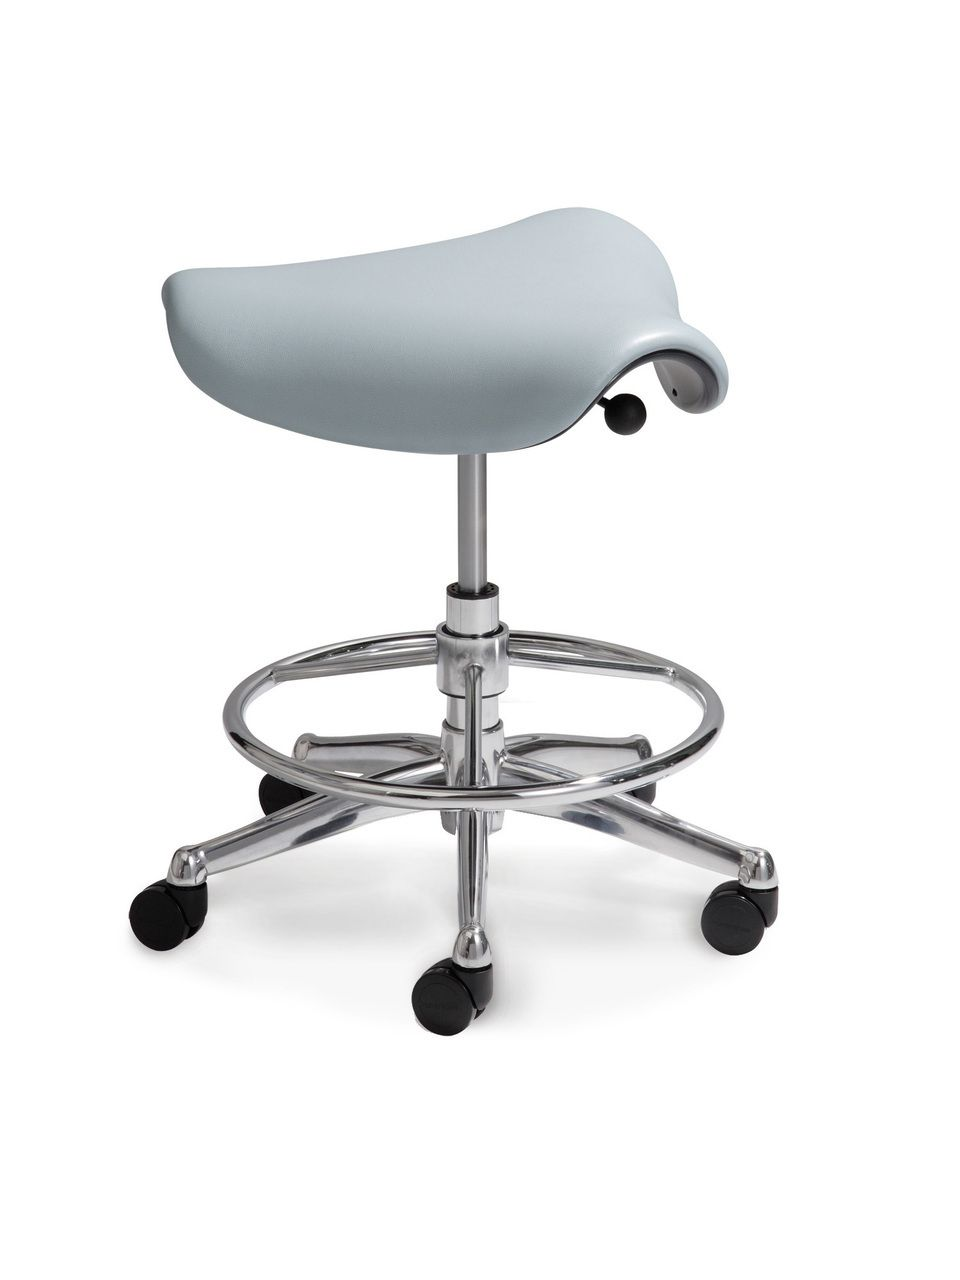 Stand Modern Humanscale Freedom Saddle Pony Saddle Seat 279 00 Http Www Standmodern Com Humanscale Freed Chair Office Furniture Design Ergonomic Seating